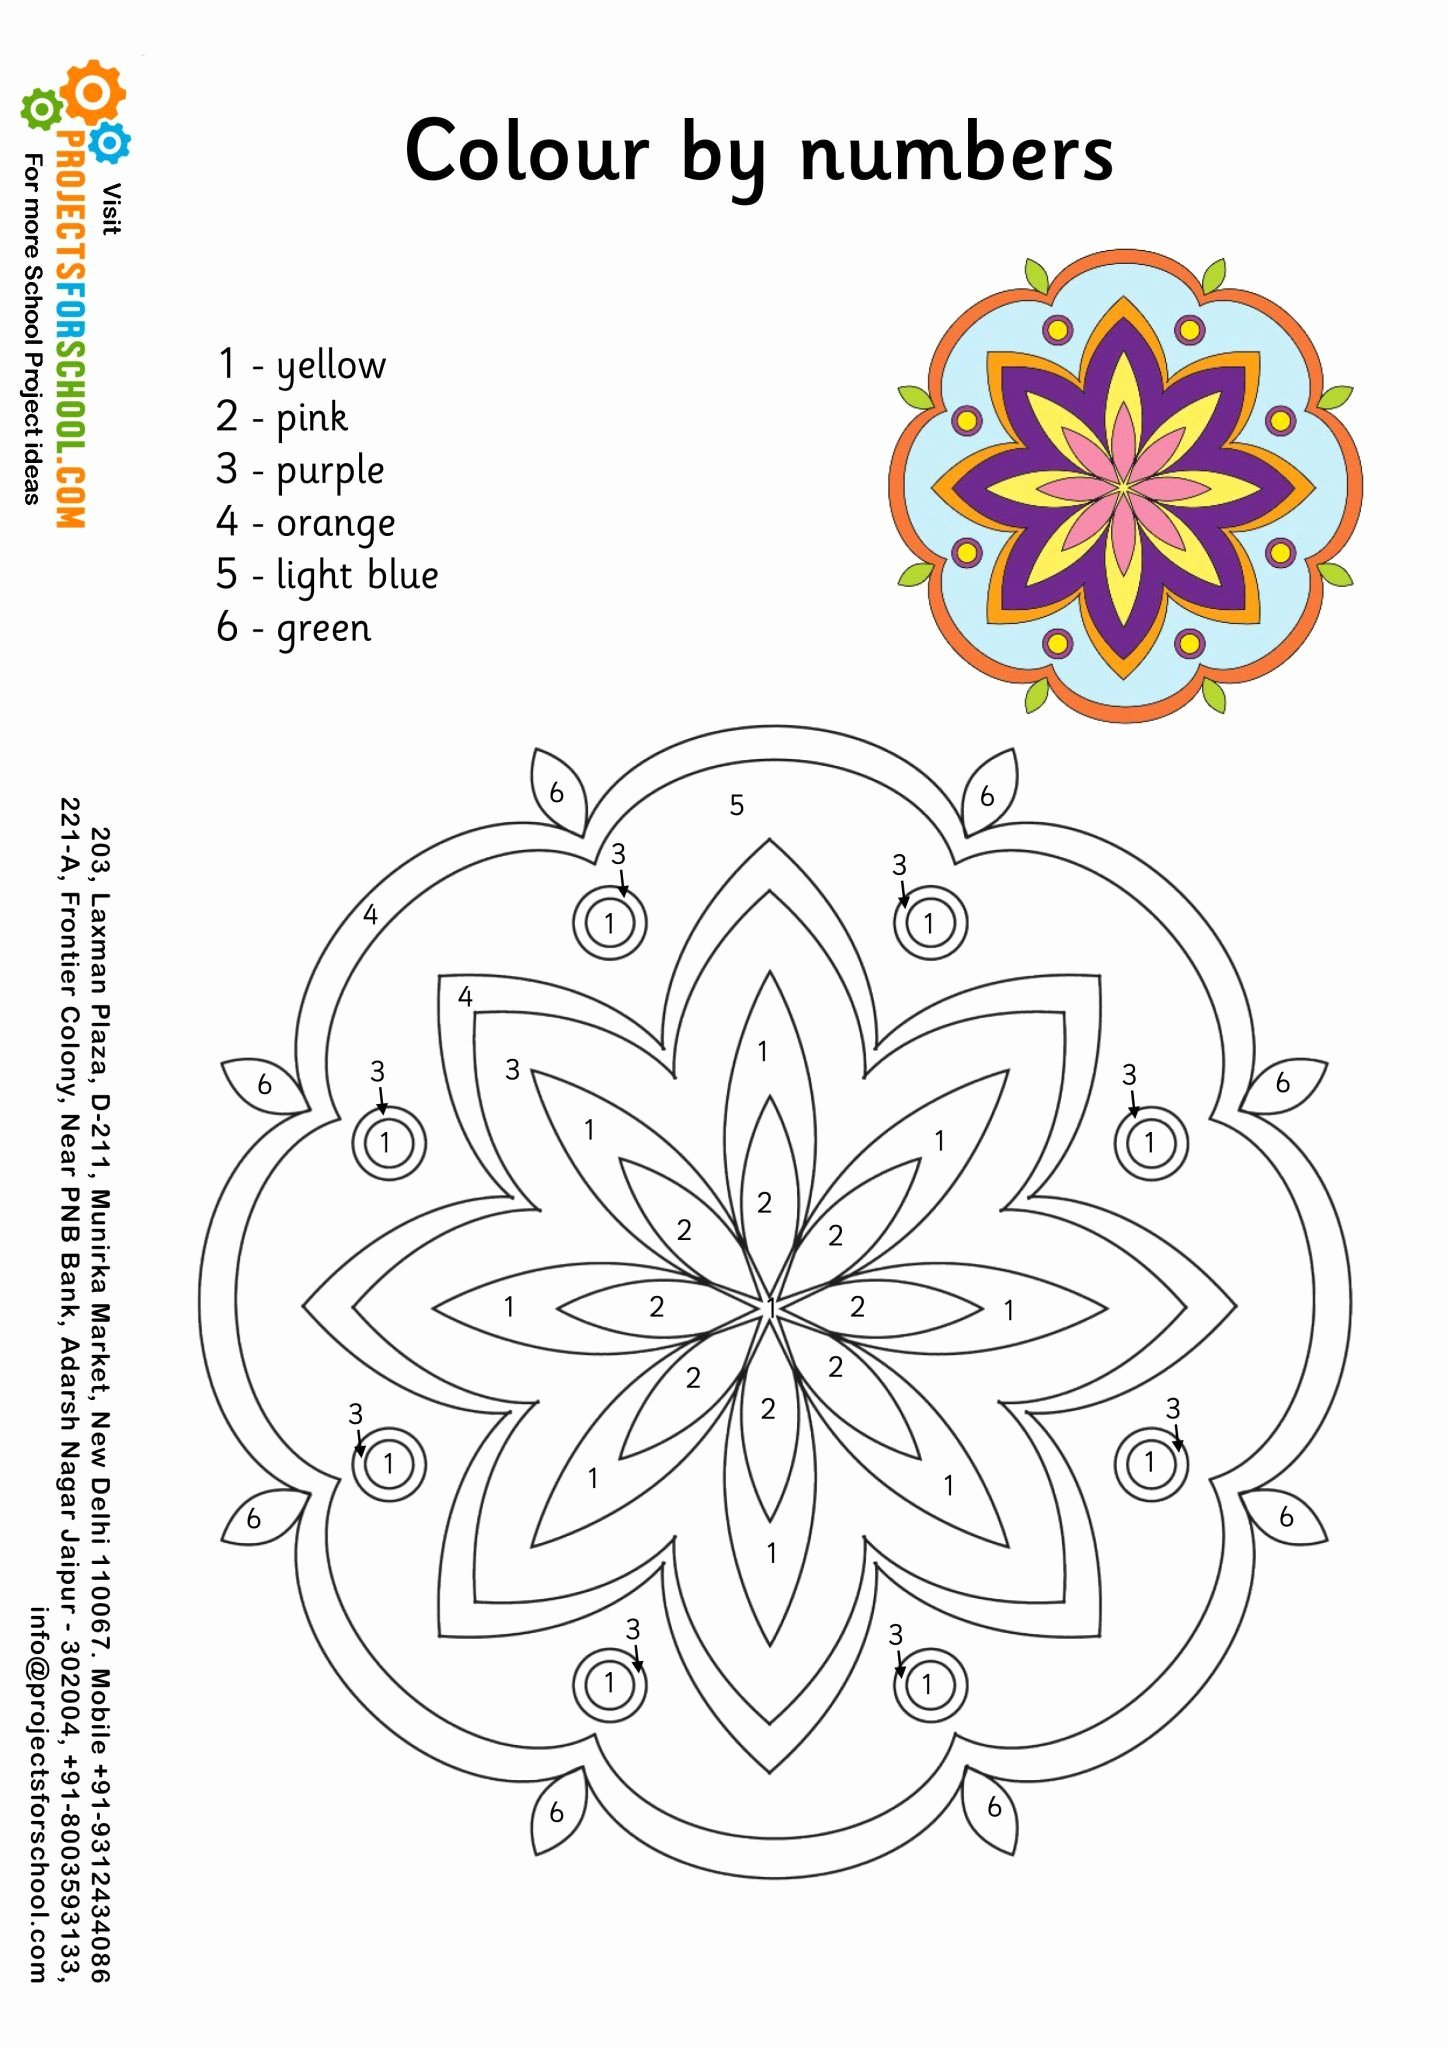 Diwali Worksheets for Preschoolers New Color by